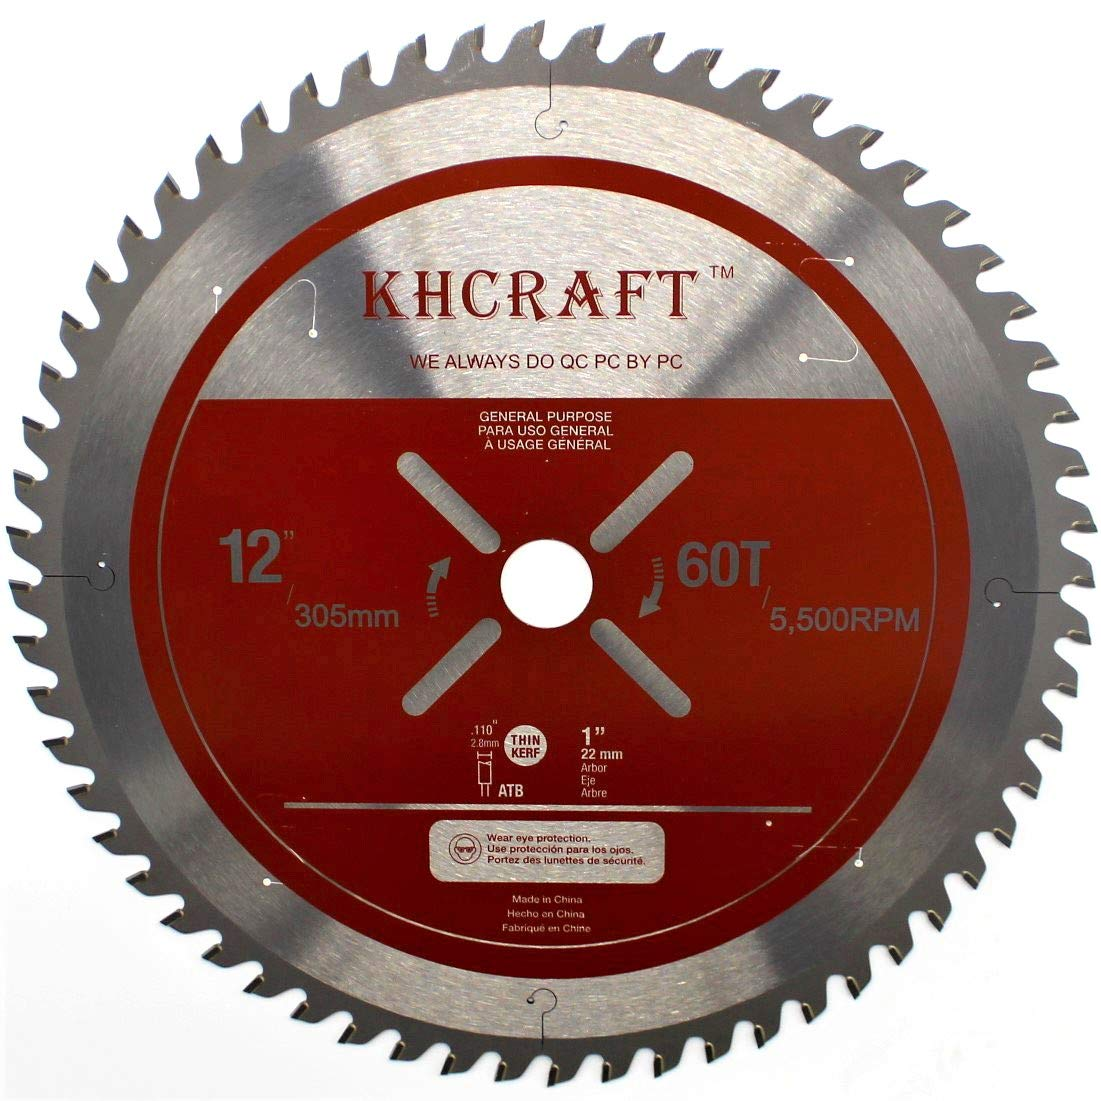 KHCRAFT Table Saw Blade